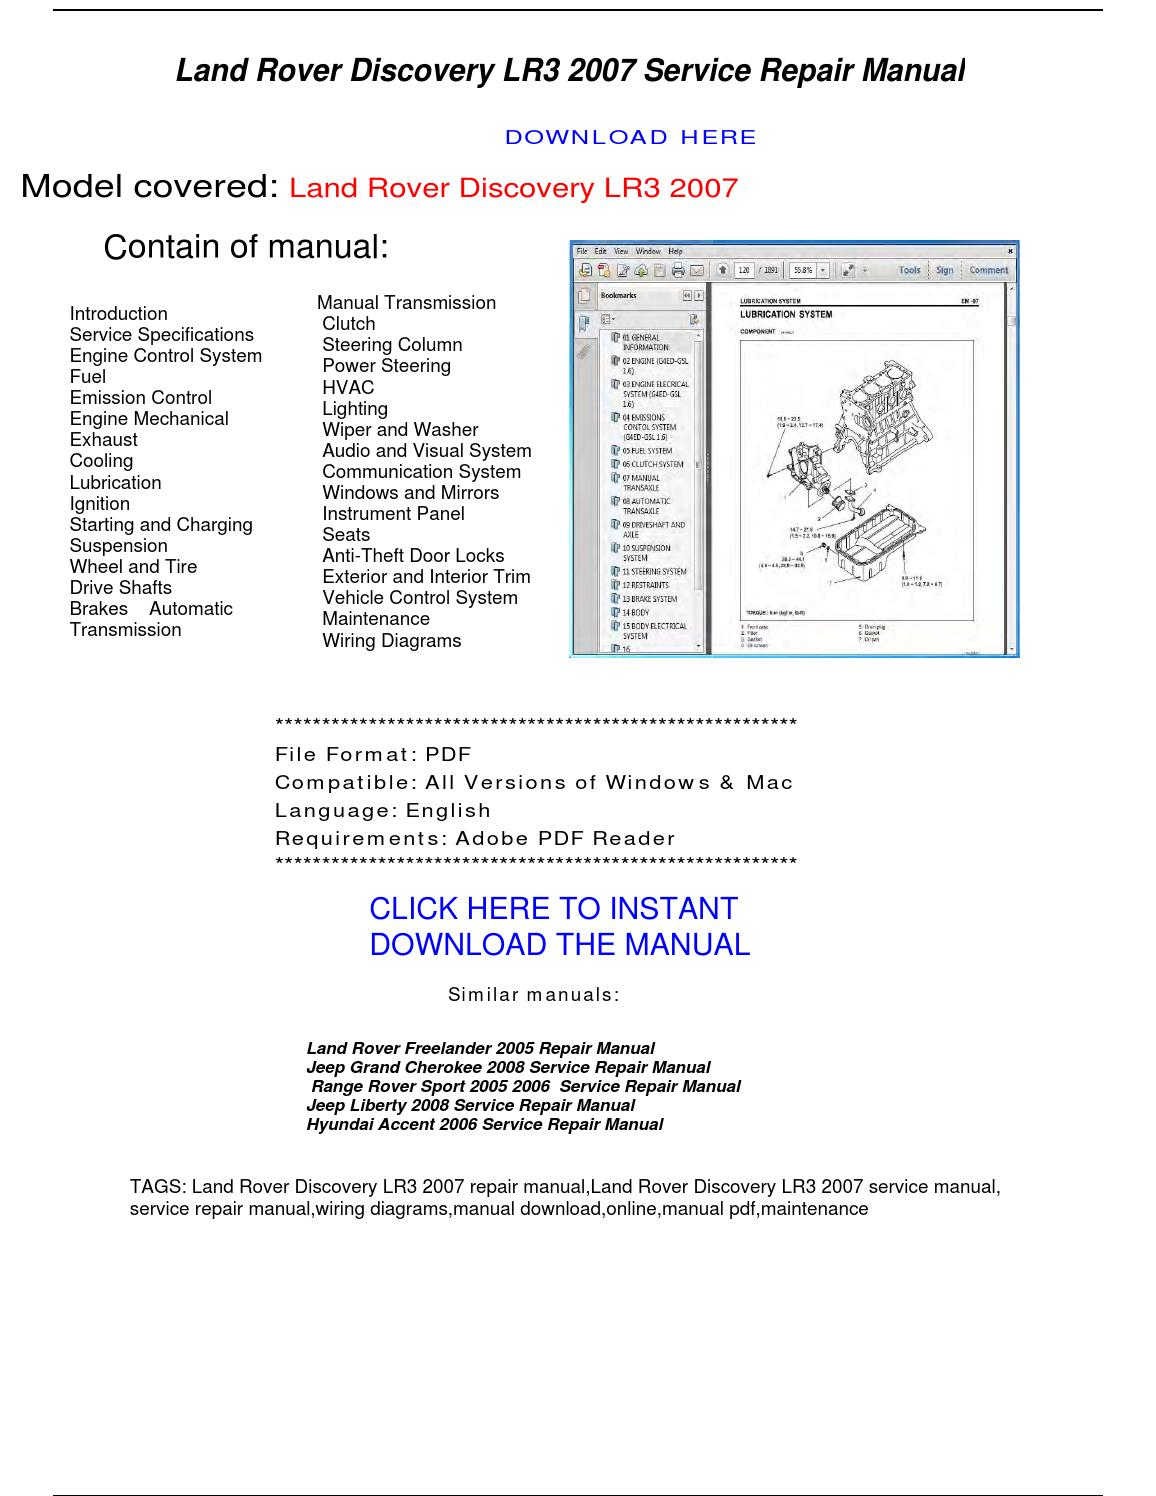 land rover discovery lr3 2007 repair manual by